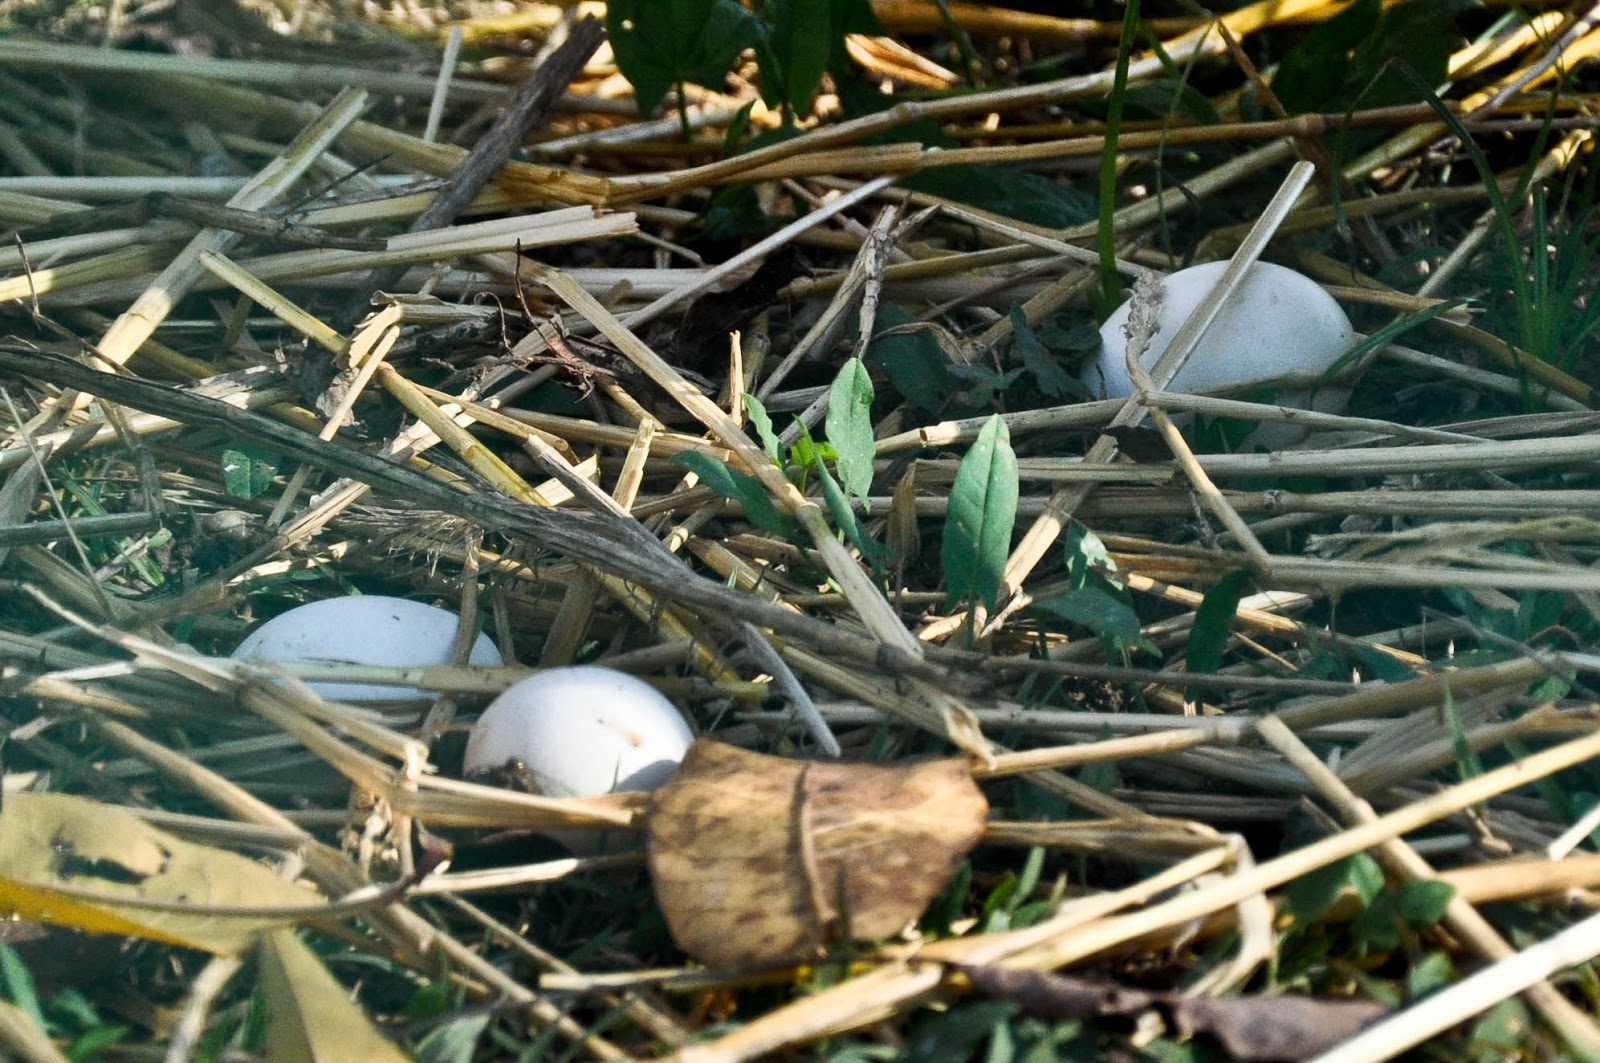 Eggs lying in the grass by the hen-house, Agriturismo La Borina, Veneto, Italy